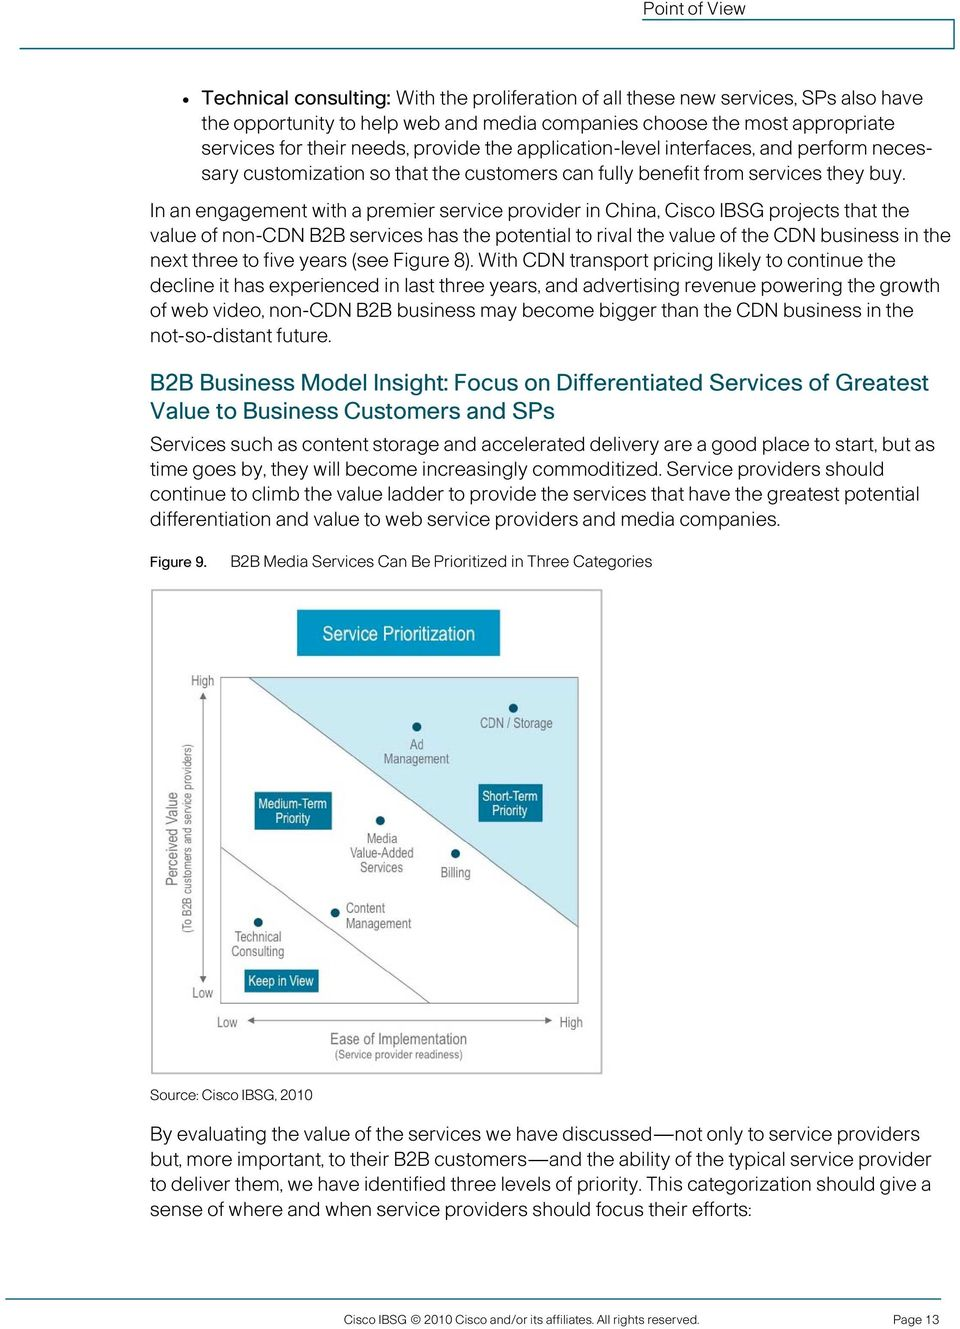 In an engagement with a premier service provider in China, Cisco IBSG projects that the value of non-cdn B2B services has the potential to rival the value of the CDN business in the next three to